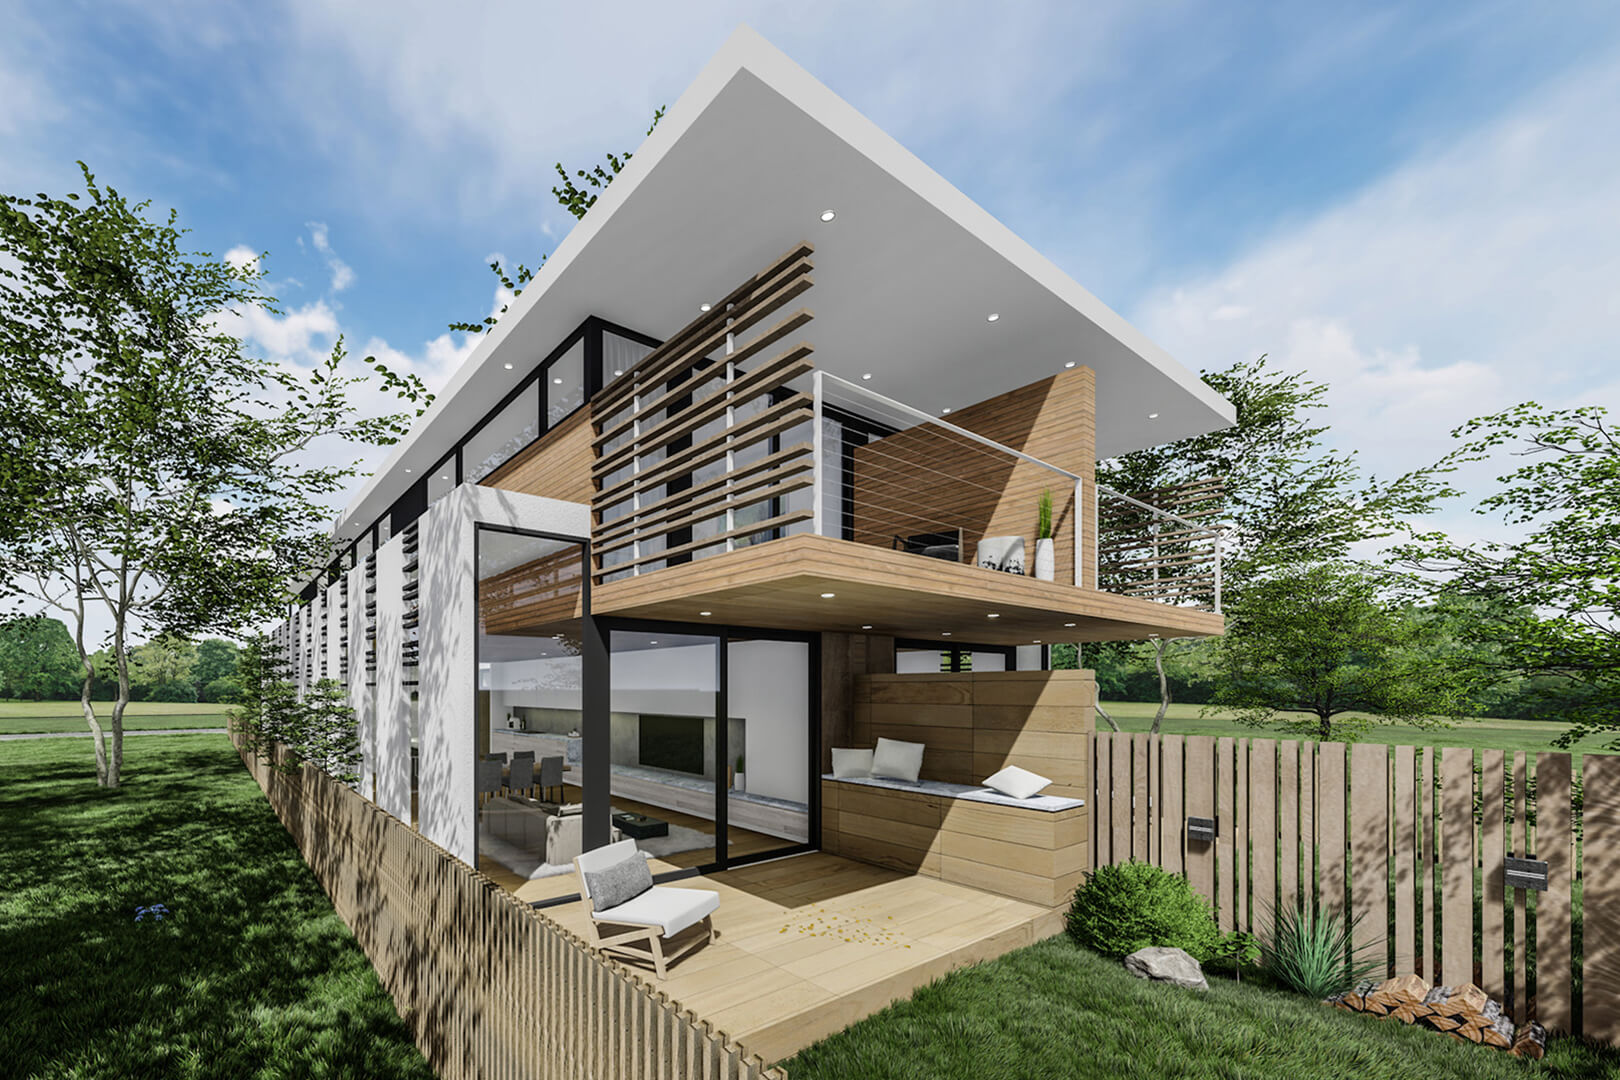 Footscray Modern Townhouses - designed by Sky Architect Studio